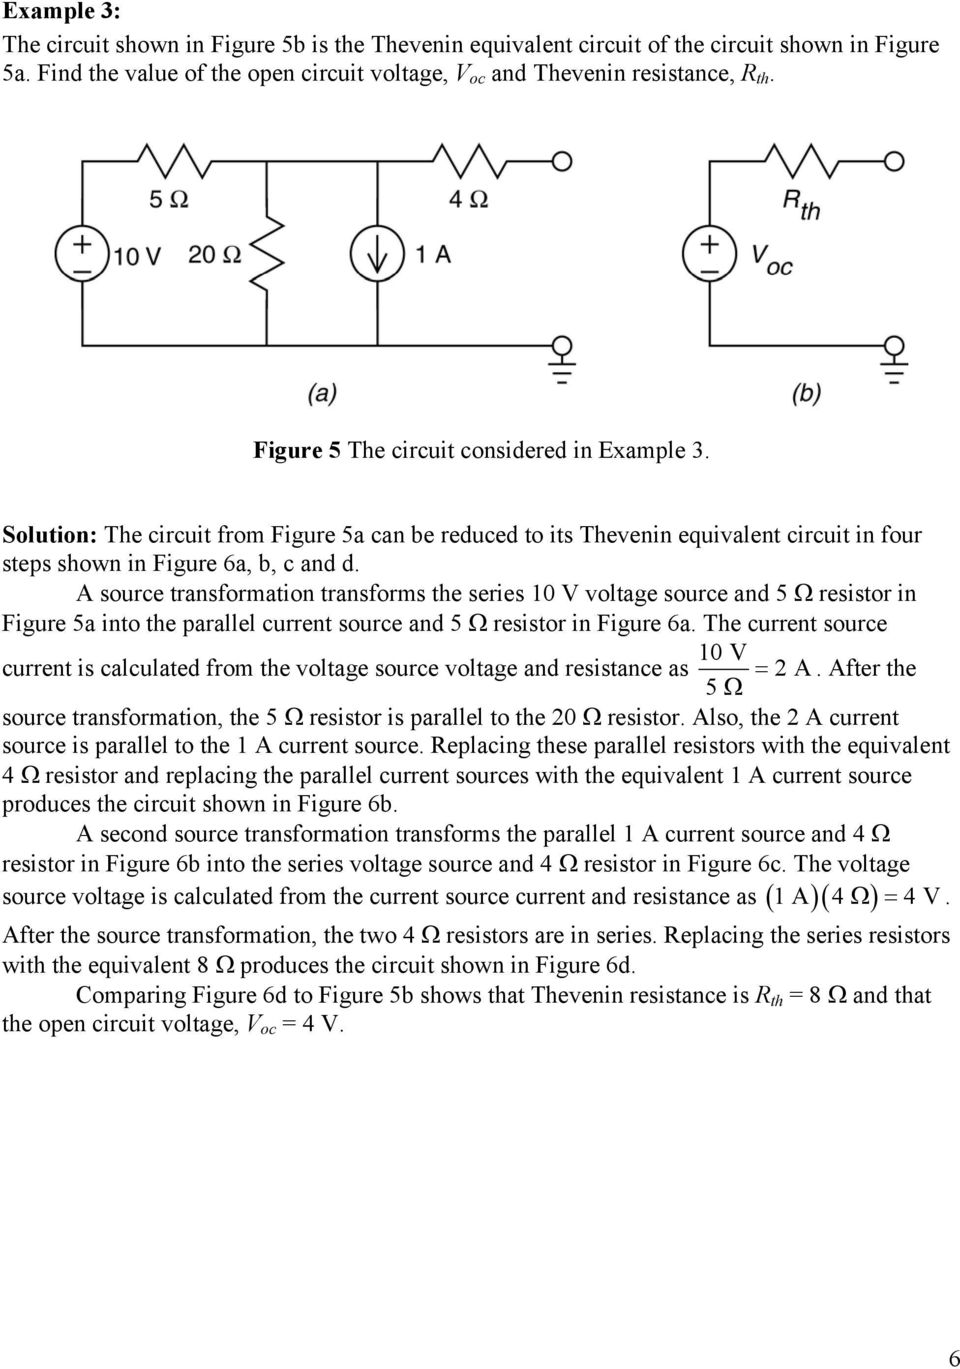 Thevenin Equivalent Circuits Pdf Ac Circuit With Current And Voltage Source A Transformation Transforms The Series 10 V 5 Resistor In Figure